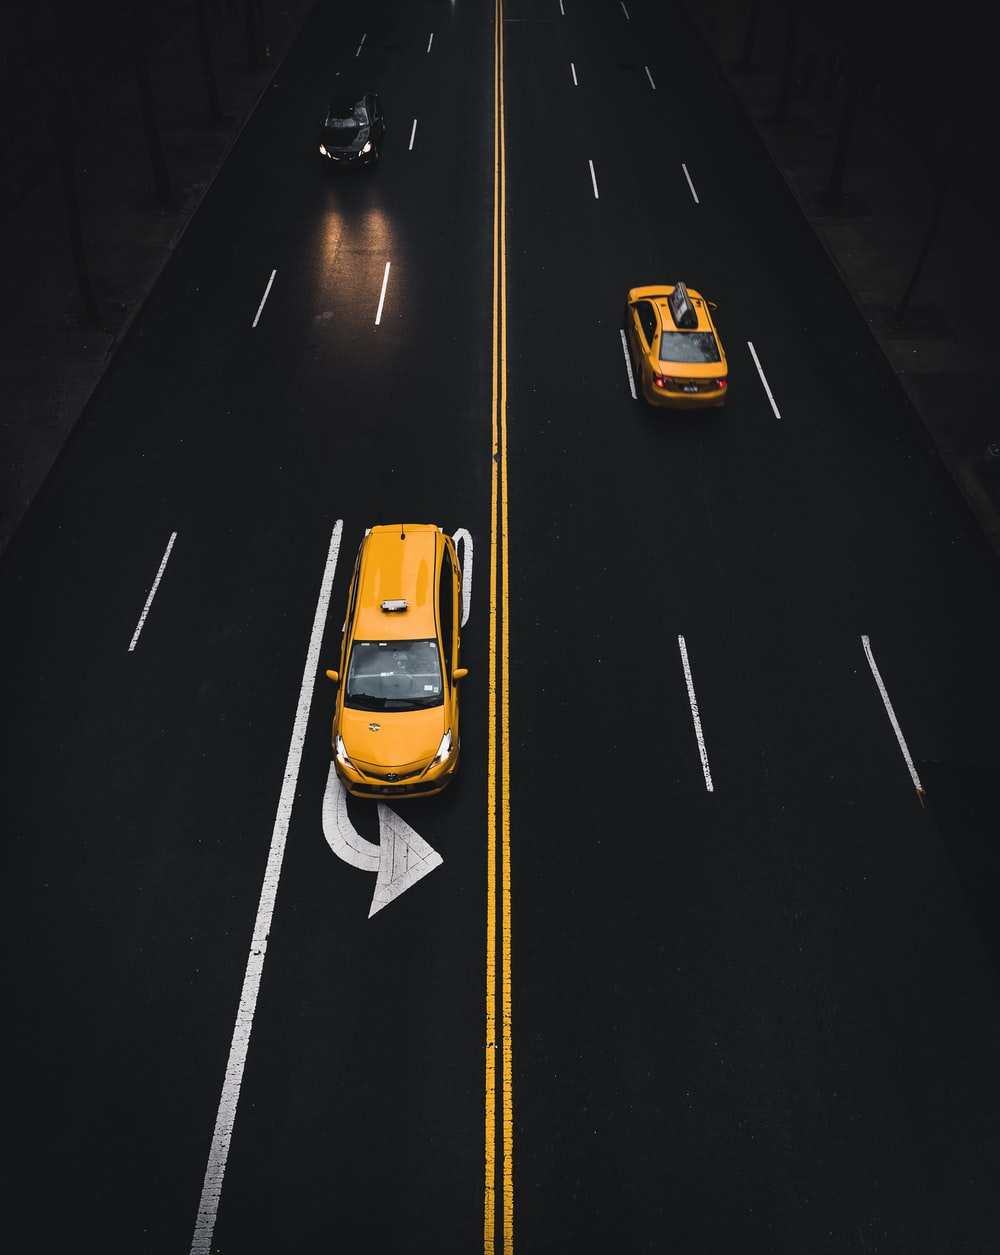 yellow SUV on road with left turn sign